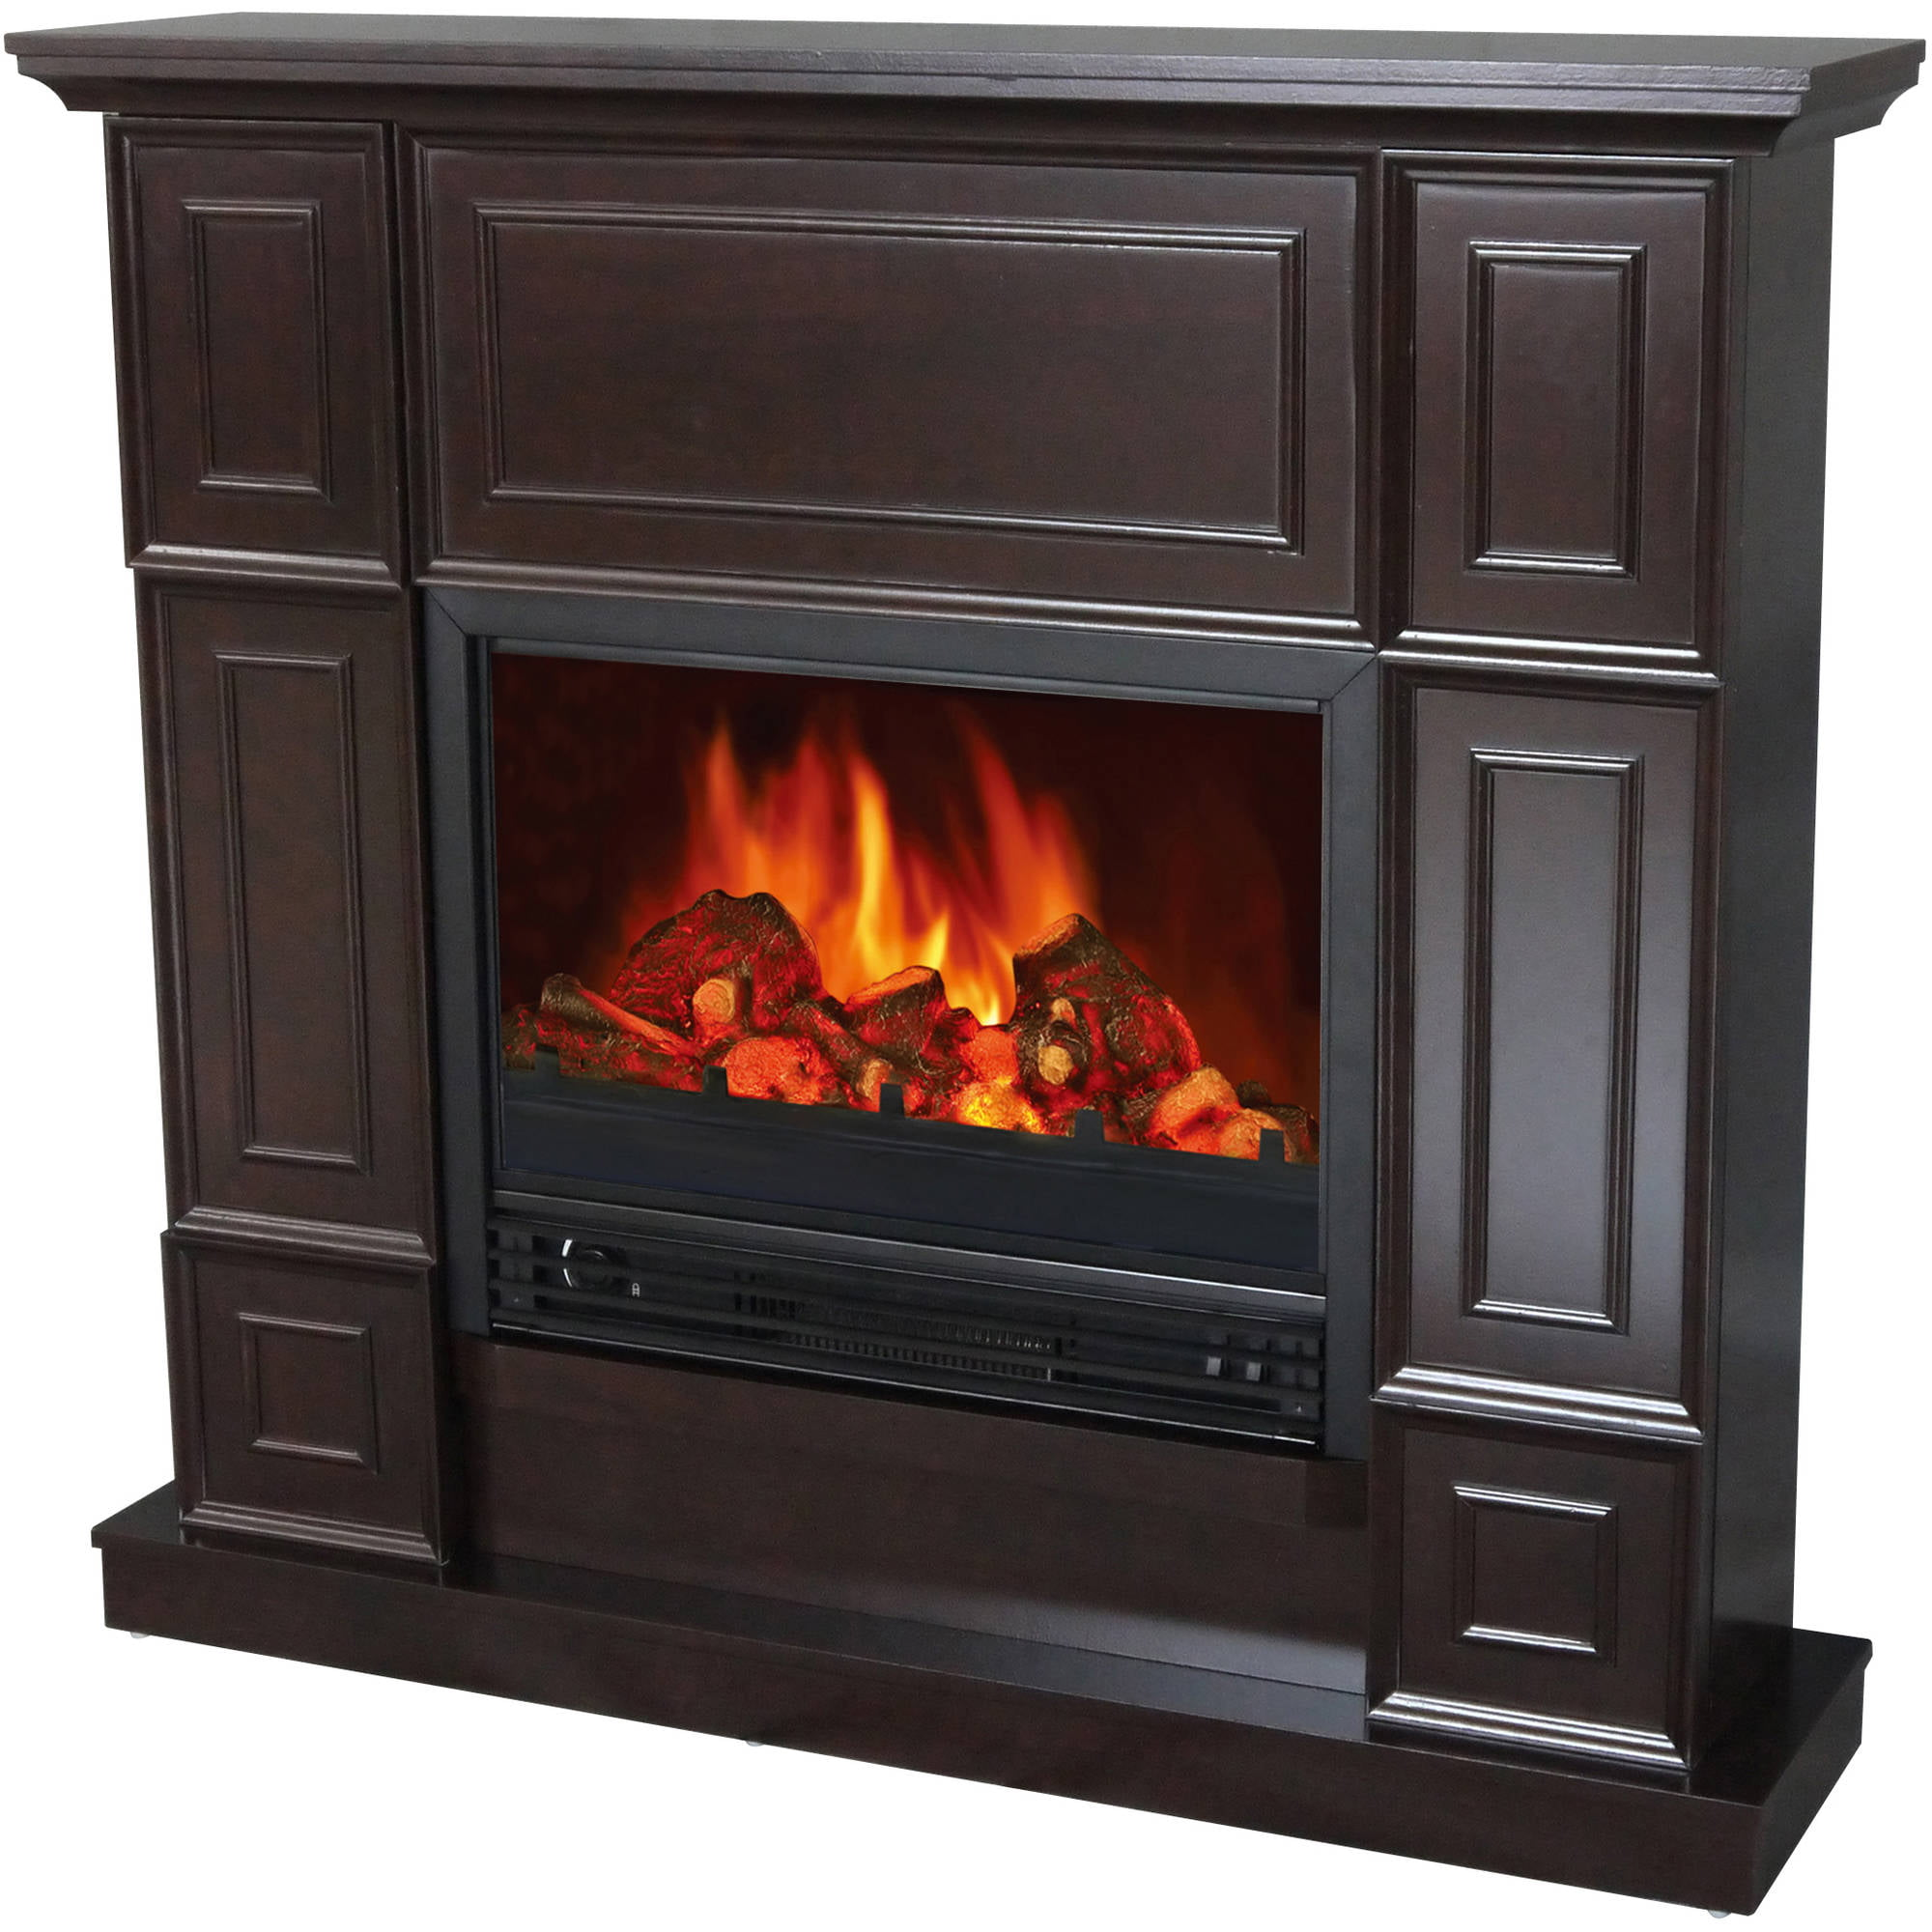 "Free Shipping. Buy Decor-Flame Electric Fireplace Space Heater with 44"" Wide Mantle at Walmart.com"